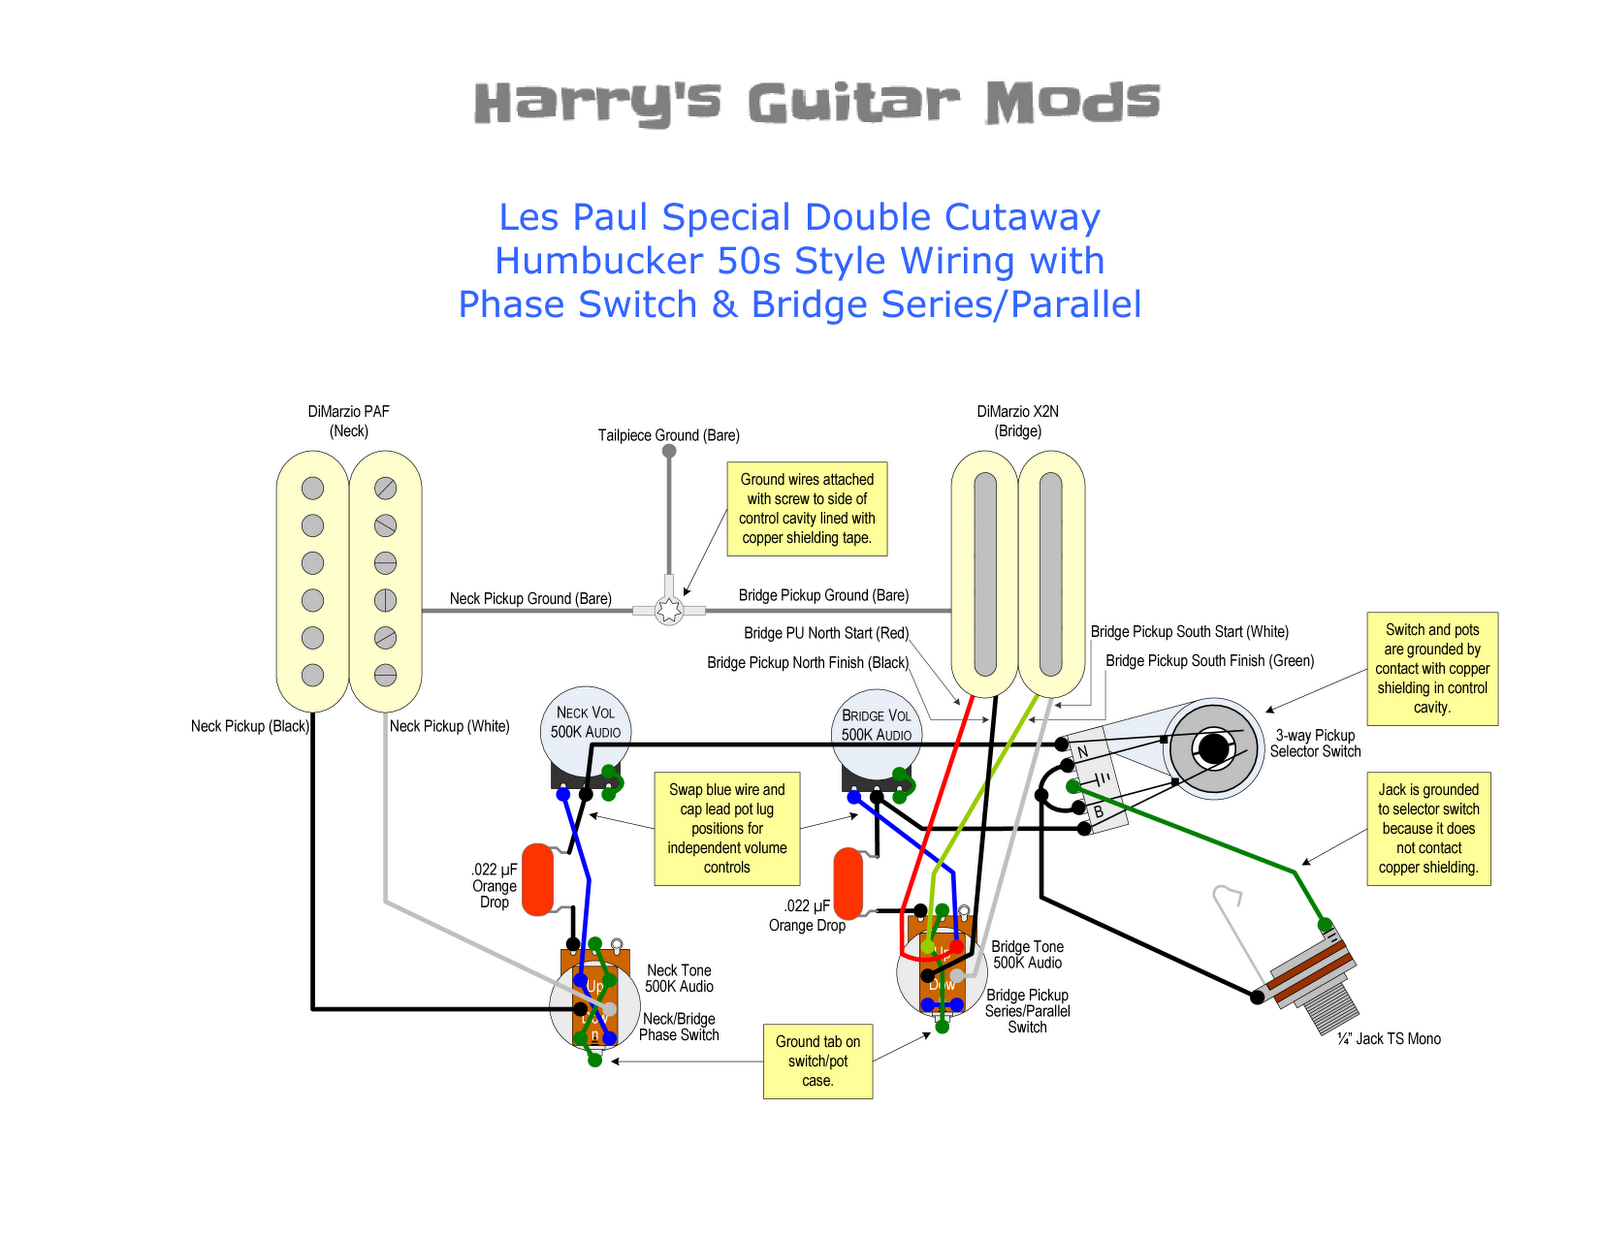 LPS+Wiring+Diagram harry's guitar mods controls wiring upgrade pots wiring diagram at eliteediting.co